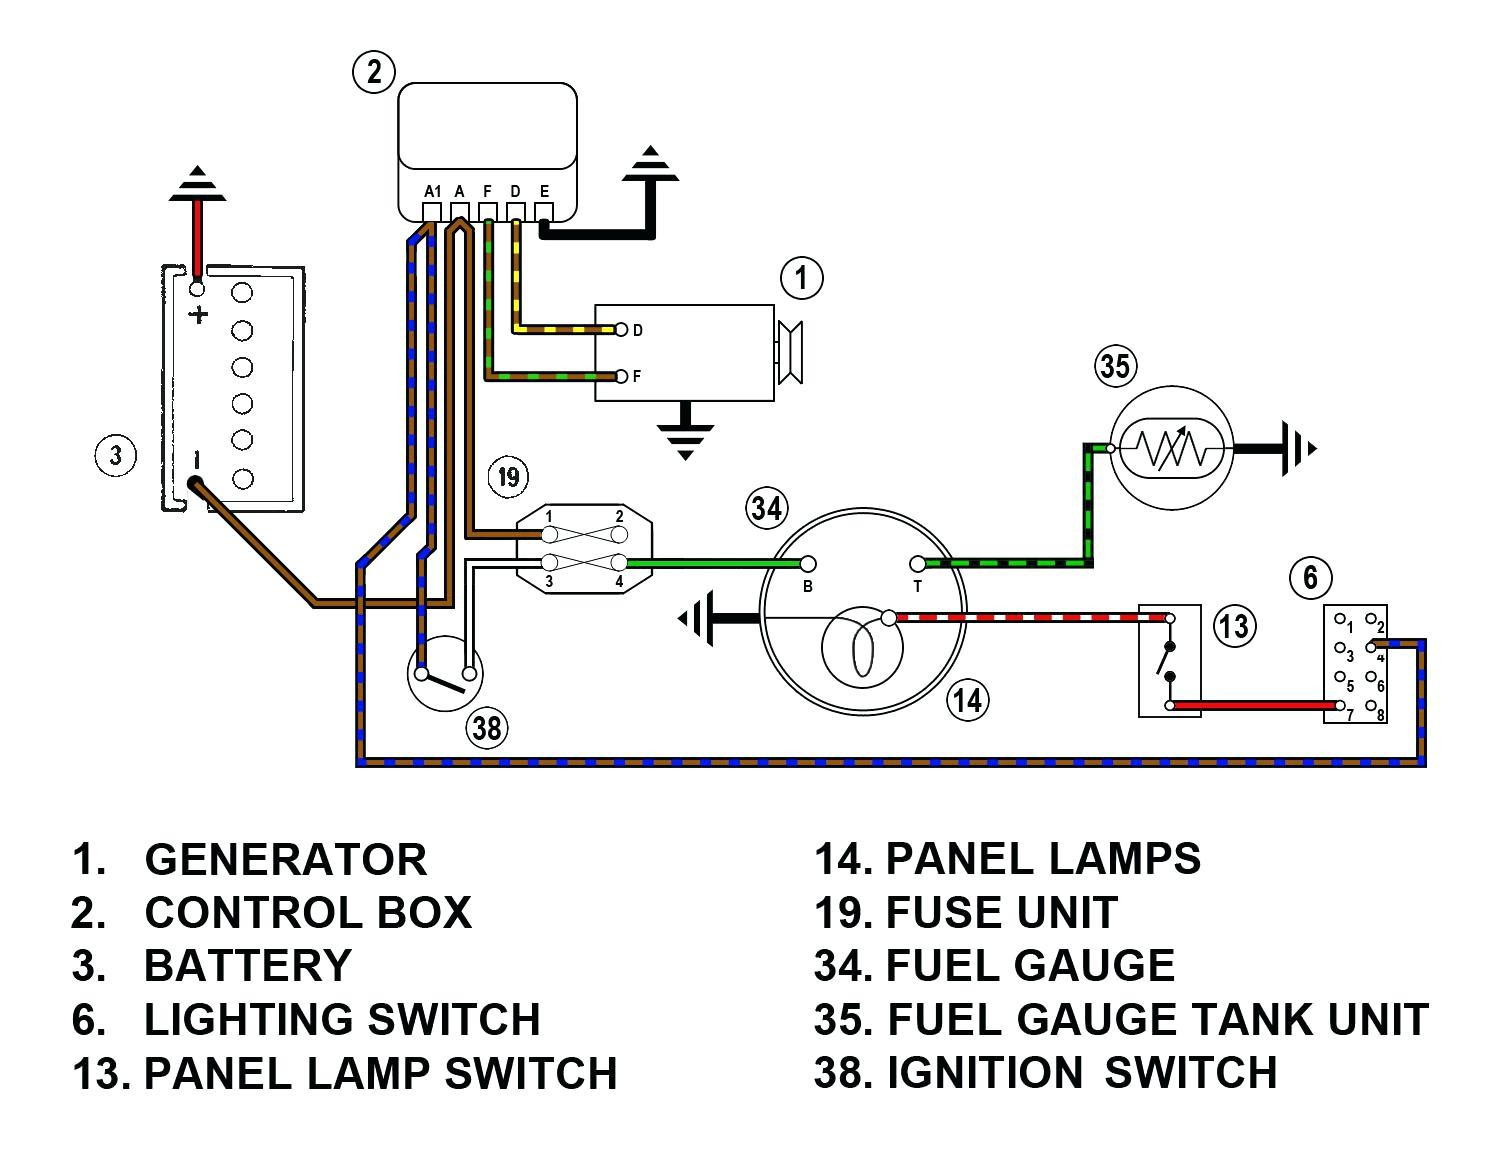 3 Wire Voltmeter Wiring Diagram New Image Switch Free Download Fxr Gas Gauge Center U2022 Rh Botarena Co Faria Schematic From